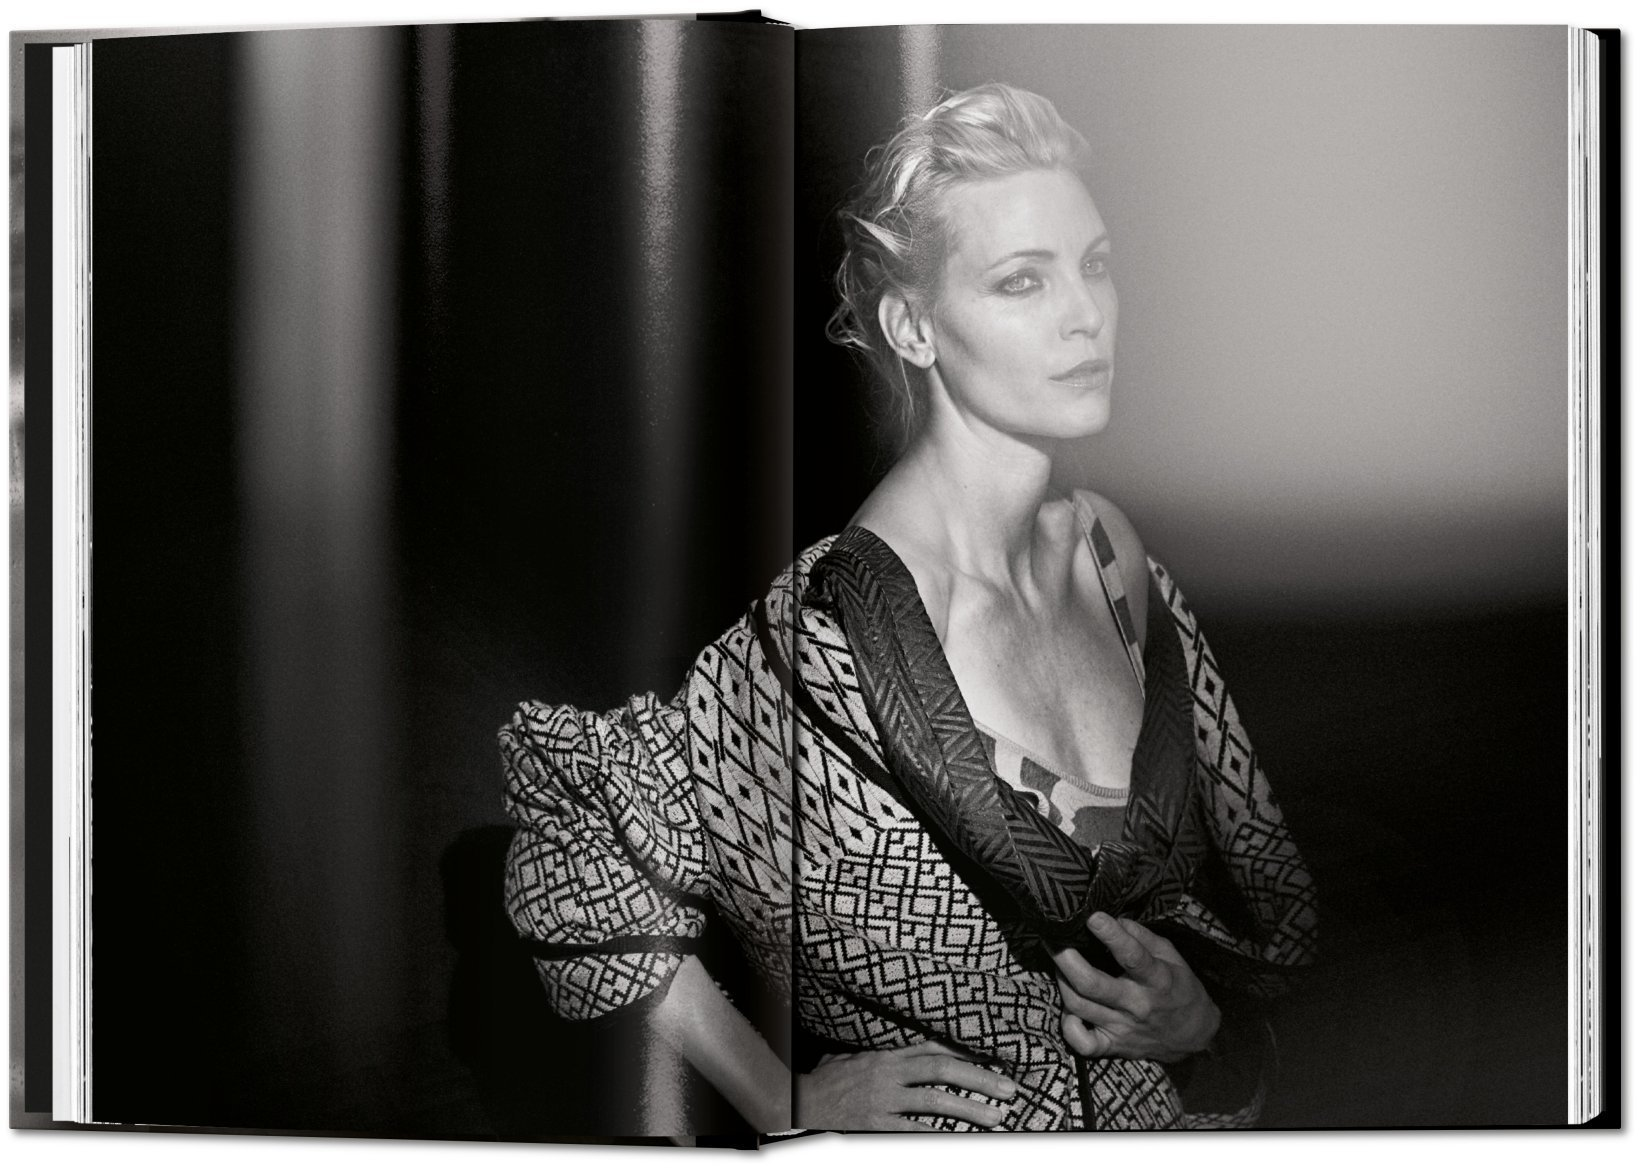 Buch, Peter Lindbergh on Fashion Photography - TASCHEN - Bild 3